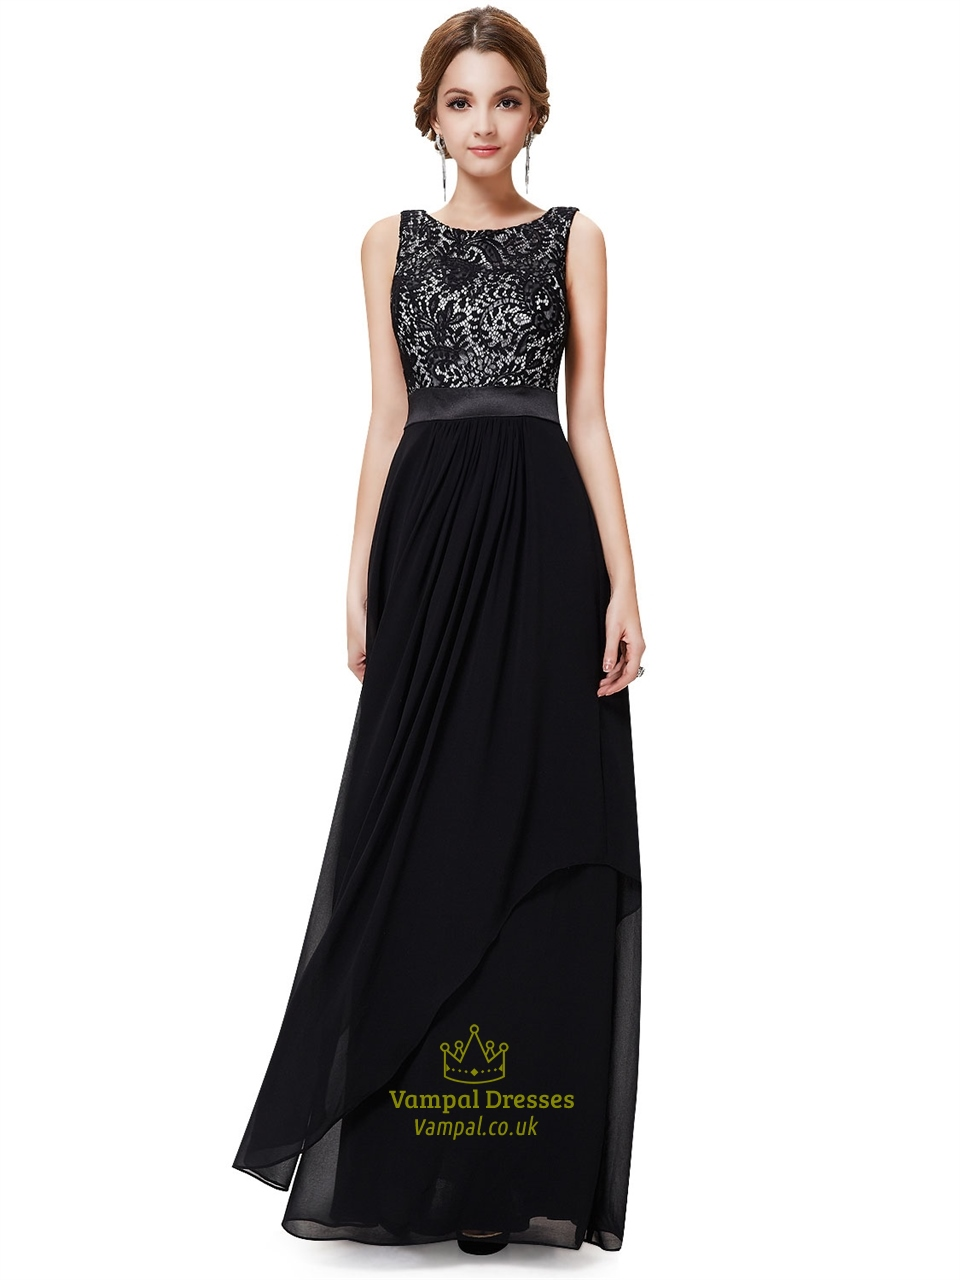 Black Asemetrical Prom Dress